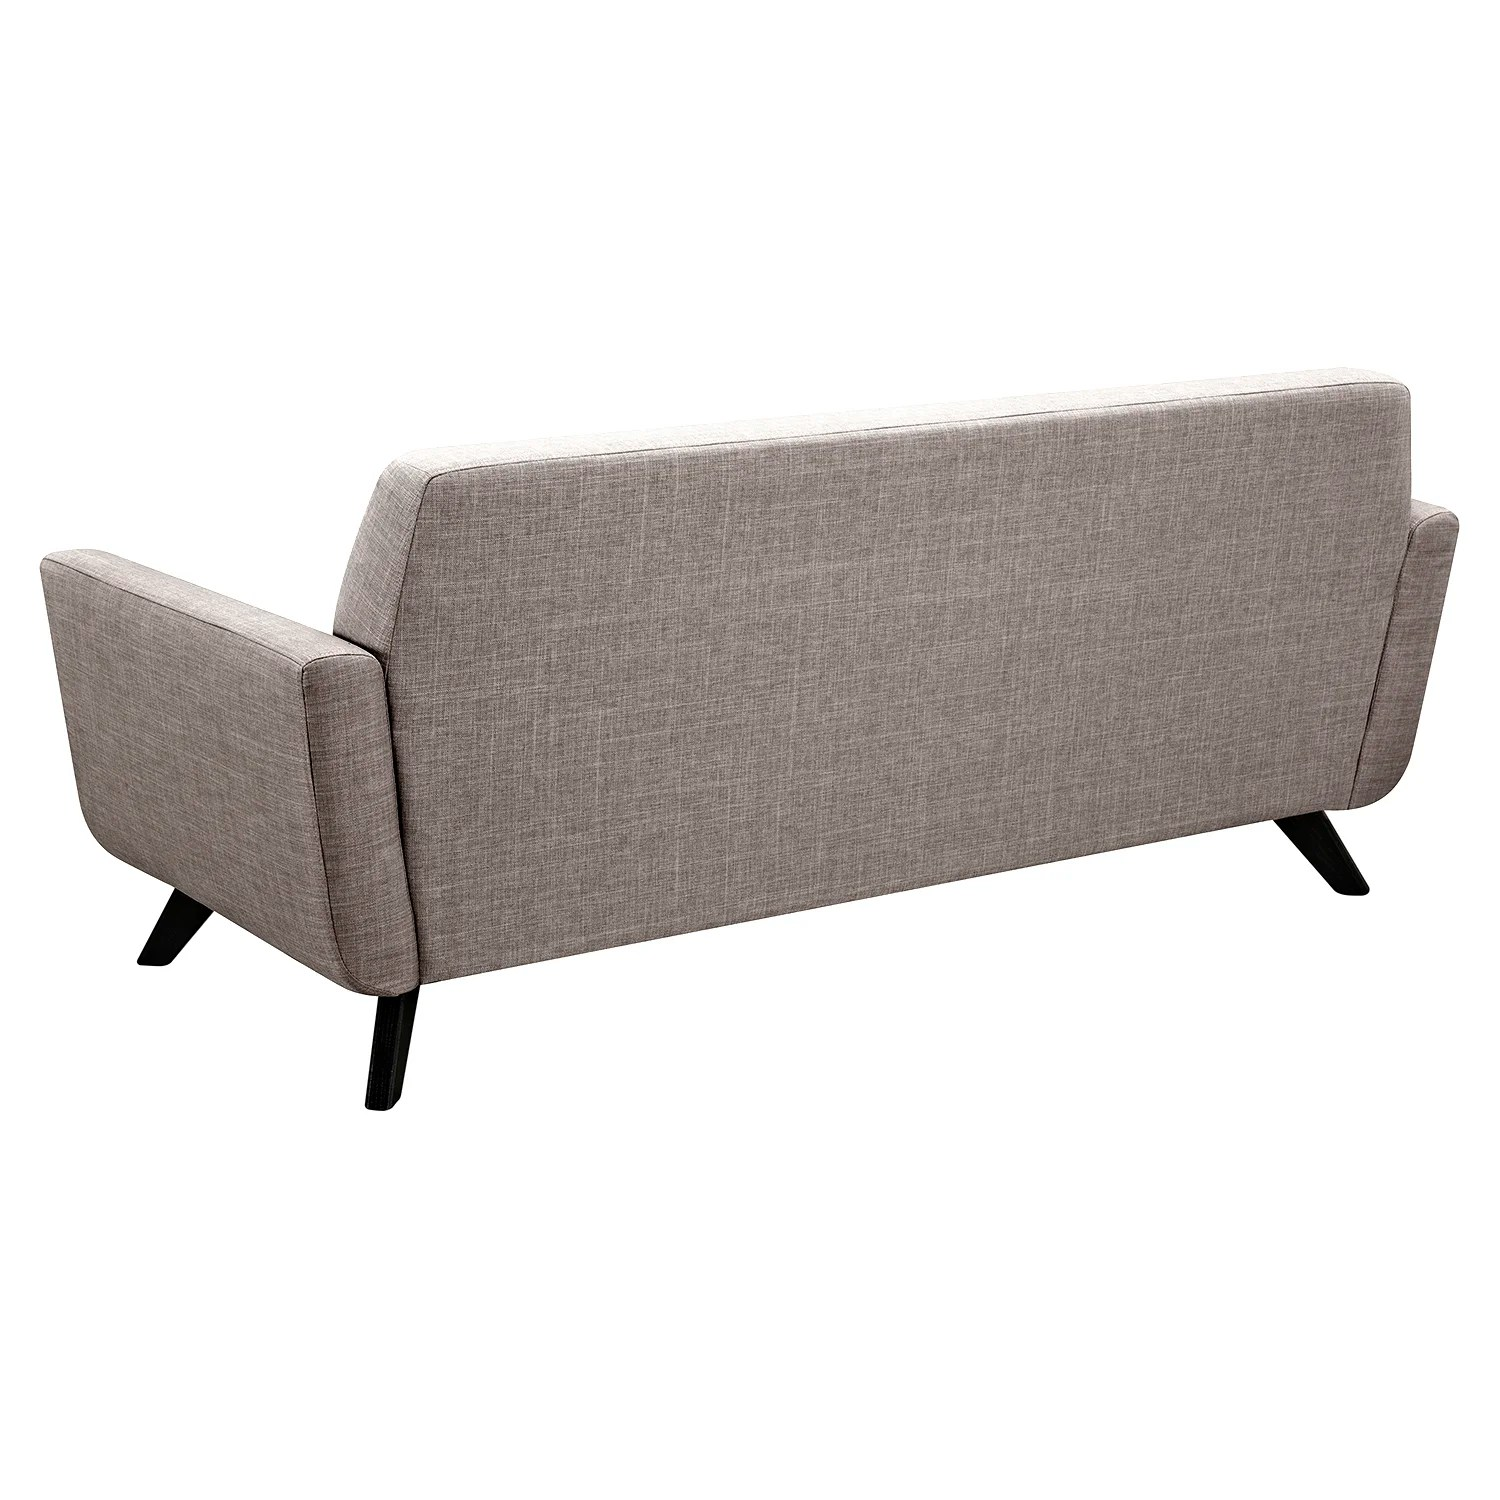 Nyekoncept Dania Sofa Reviews Wayfair